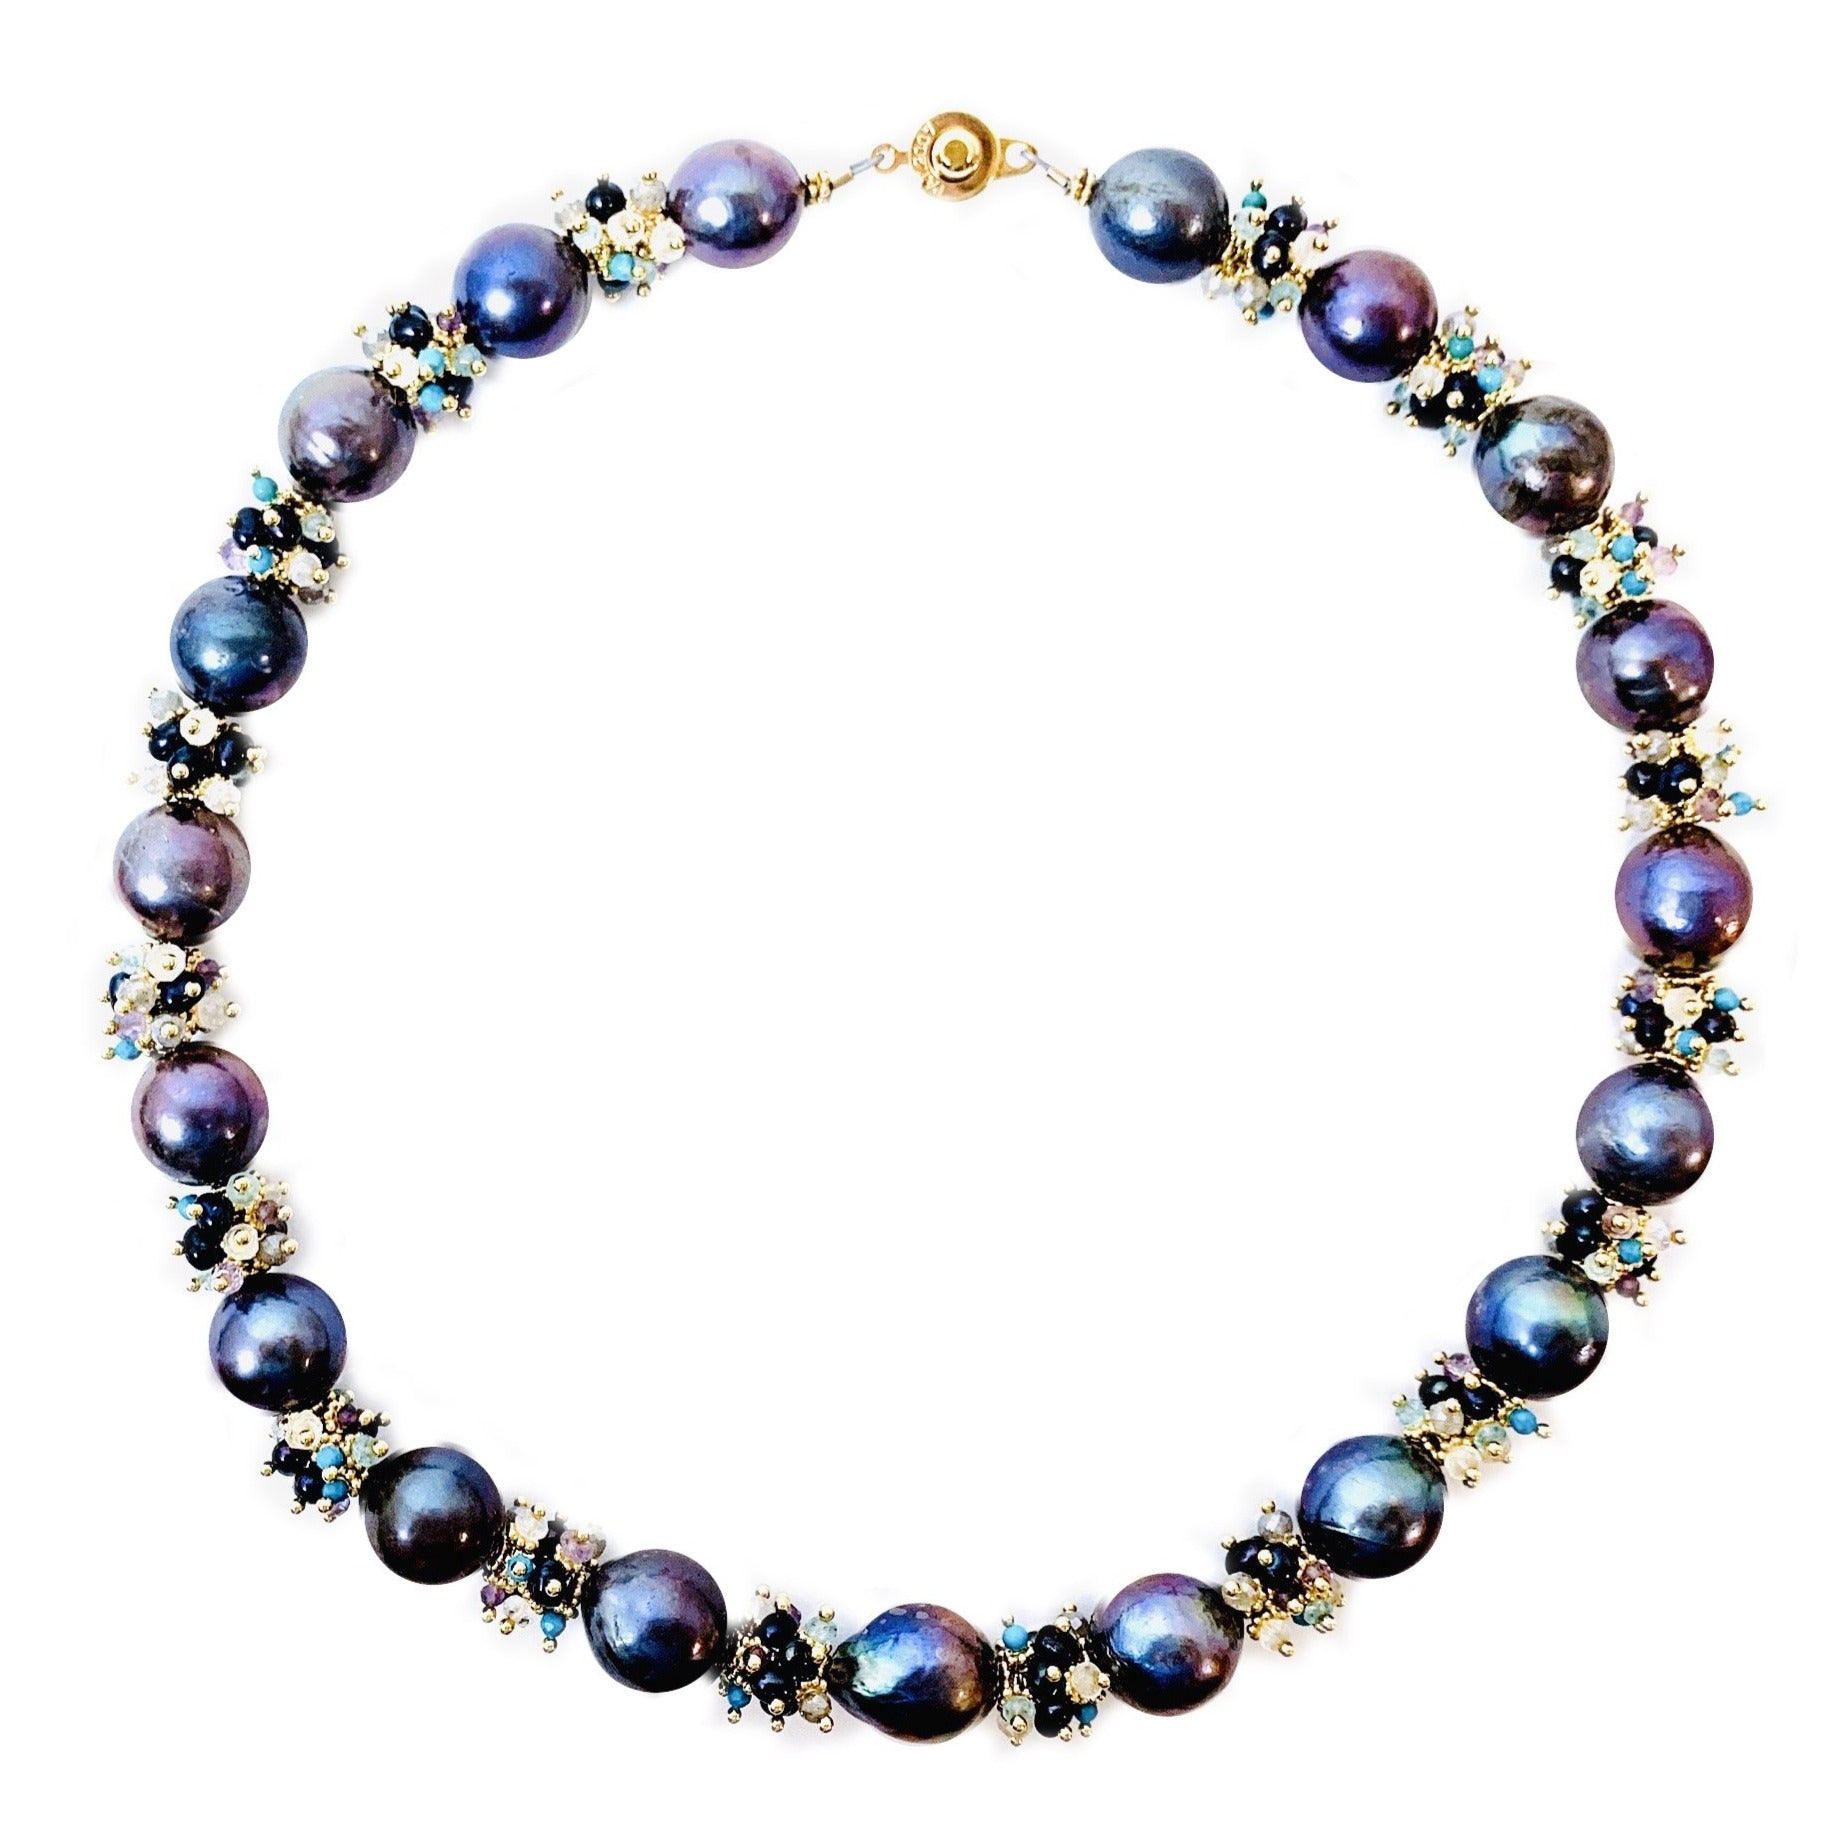 Peacock Baroque Freshwater Pearl Necklace with Assorted Semi Precious Clusters